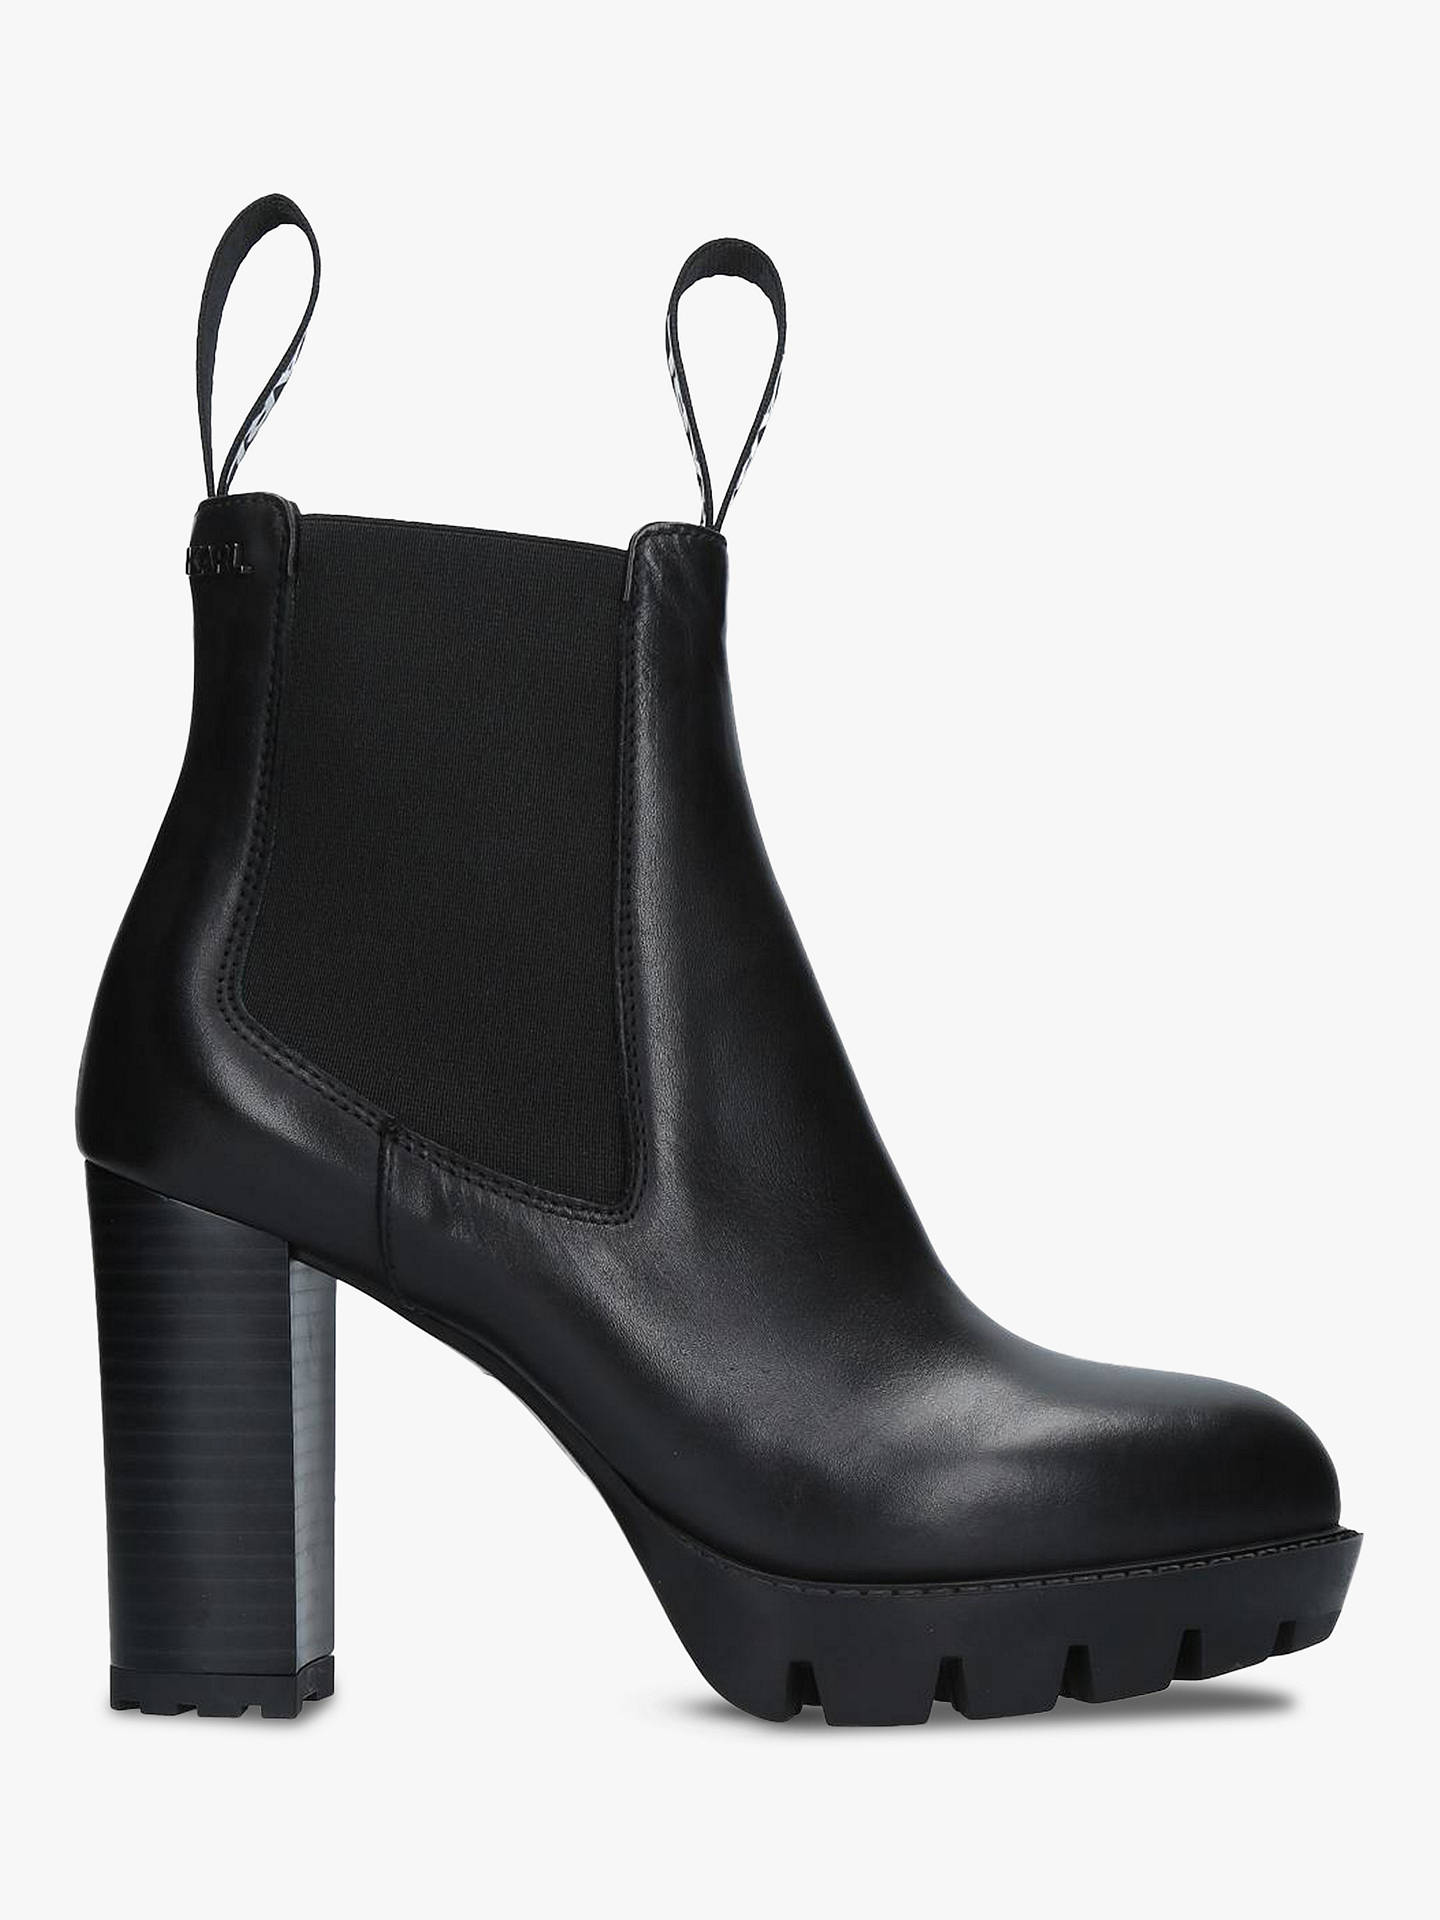 63d8f04b7a3f54 Buy KARL LAGERFELD Voyage Block Heel Platform Ankle Boots, Black Leather, 2  Online at ...